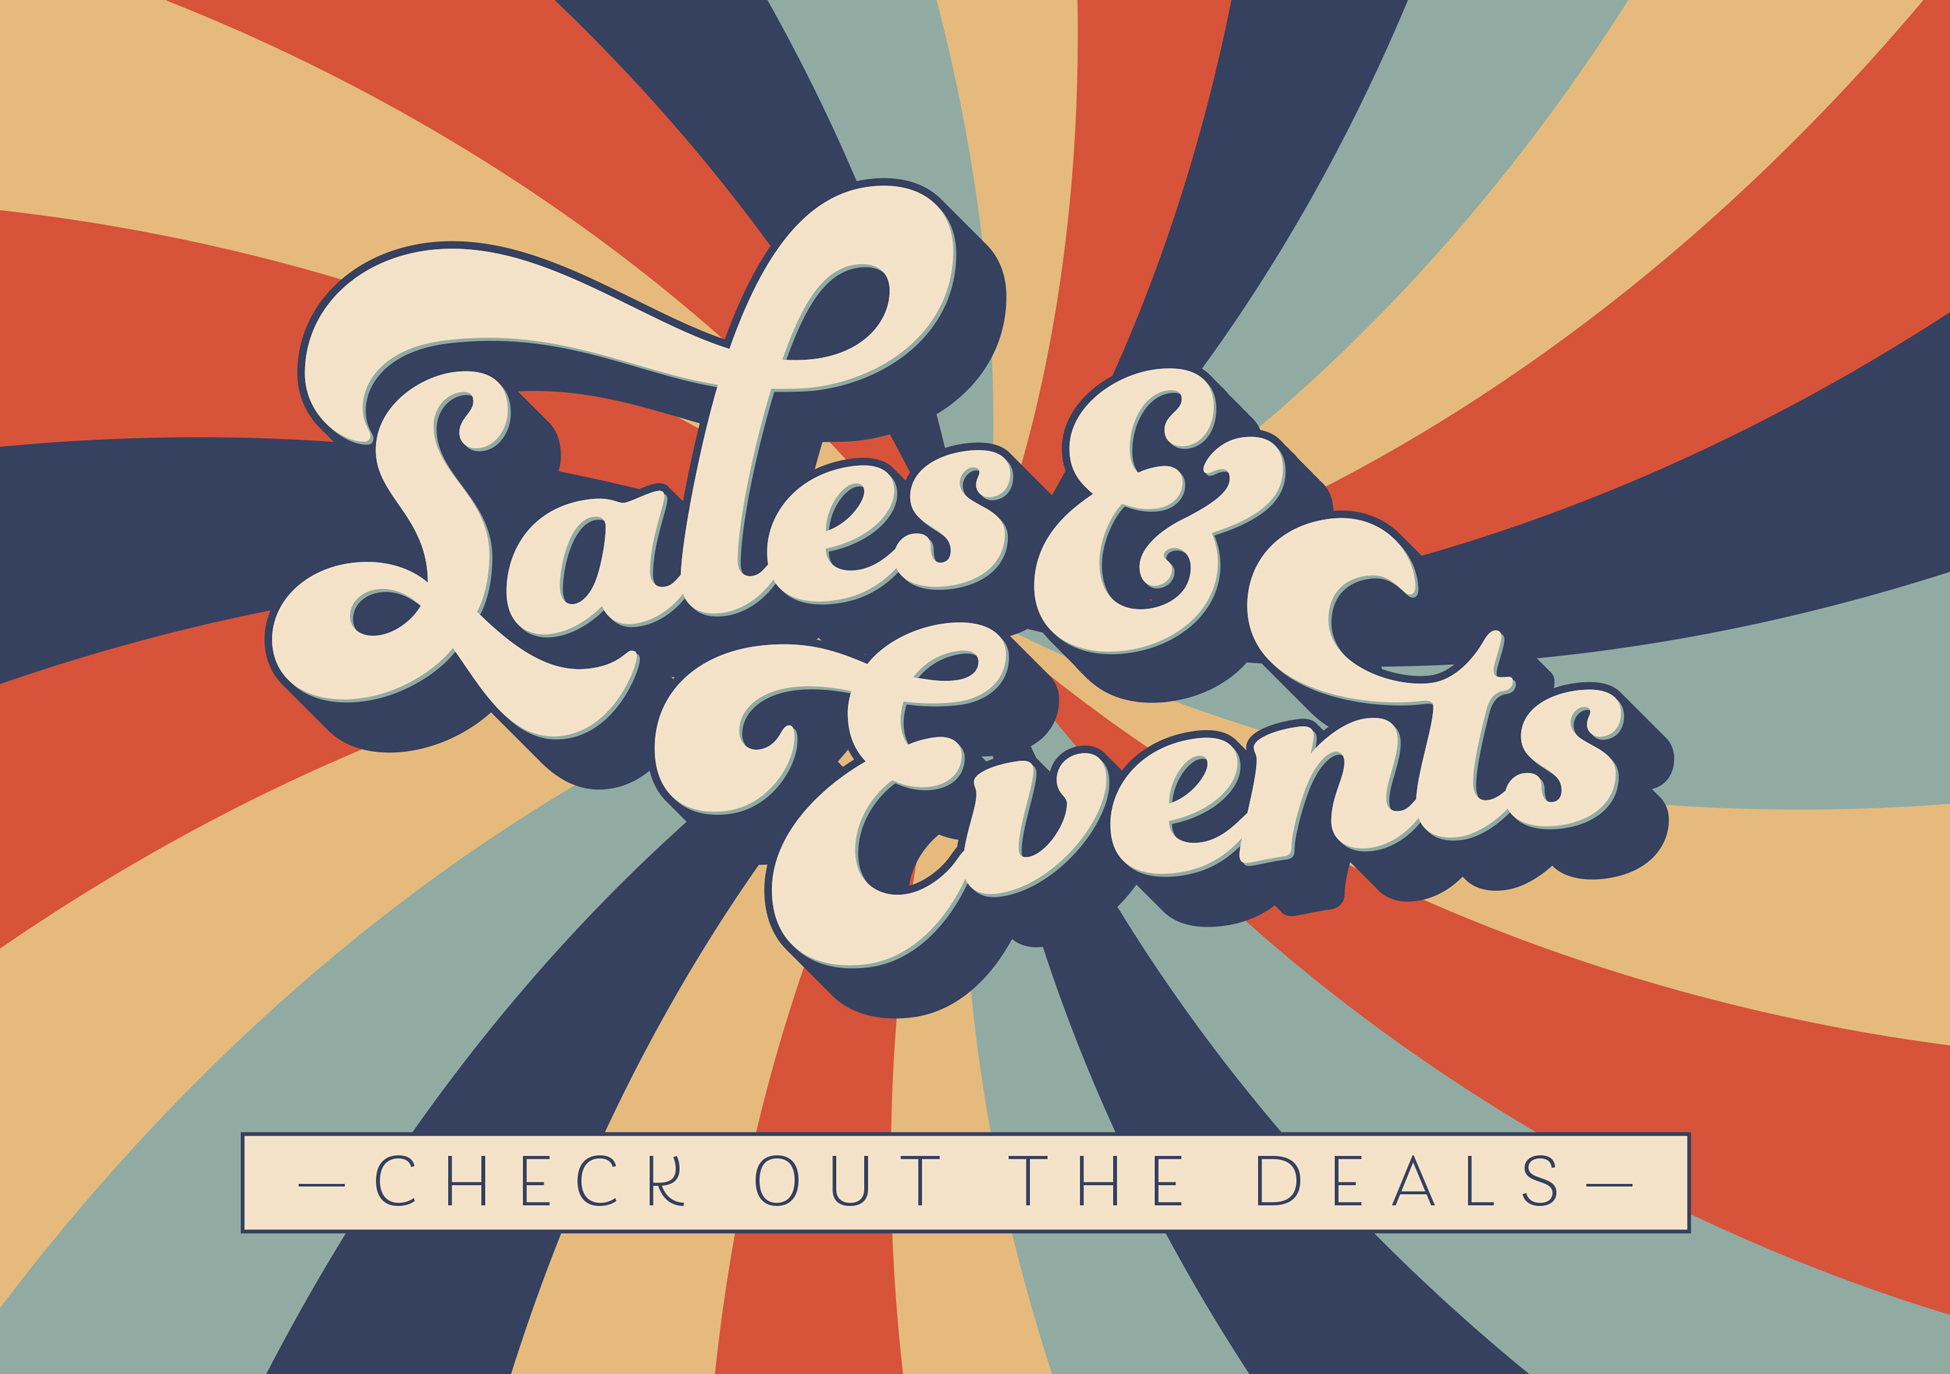 Sales and Events